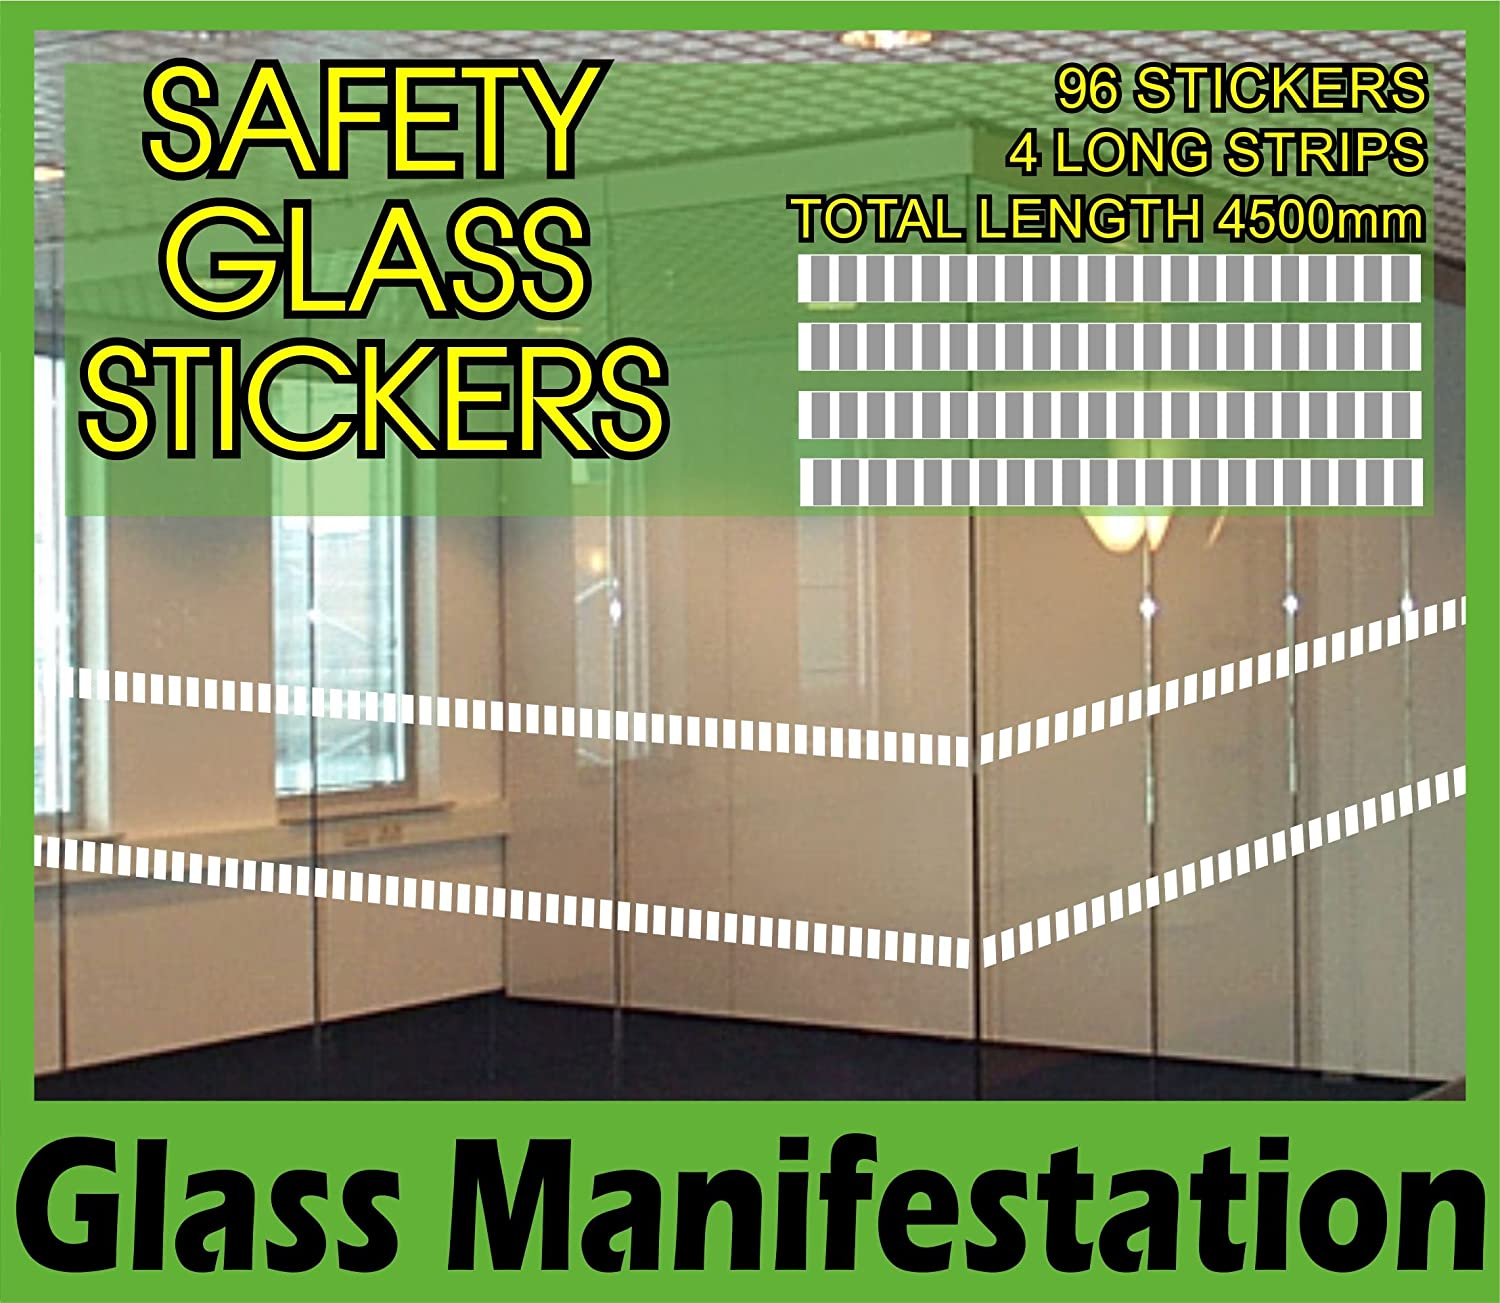 Pack of 96 glass safety stickers 75mm x 30mm each manifestation etch effect front shop patio doors easy application quality product pre spaced 4500 mm in